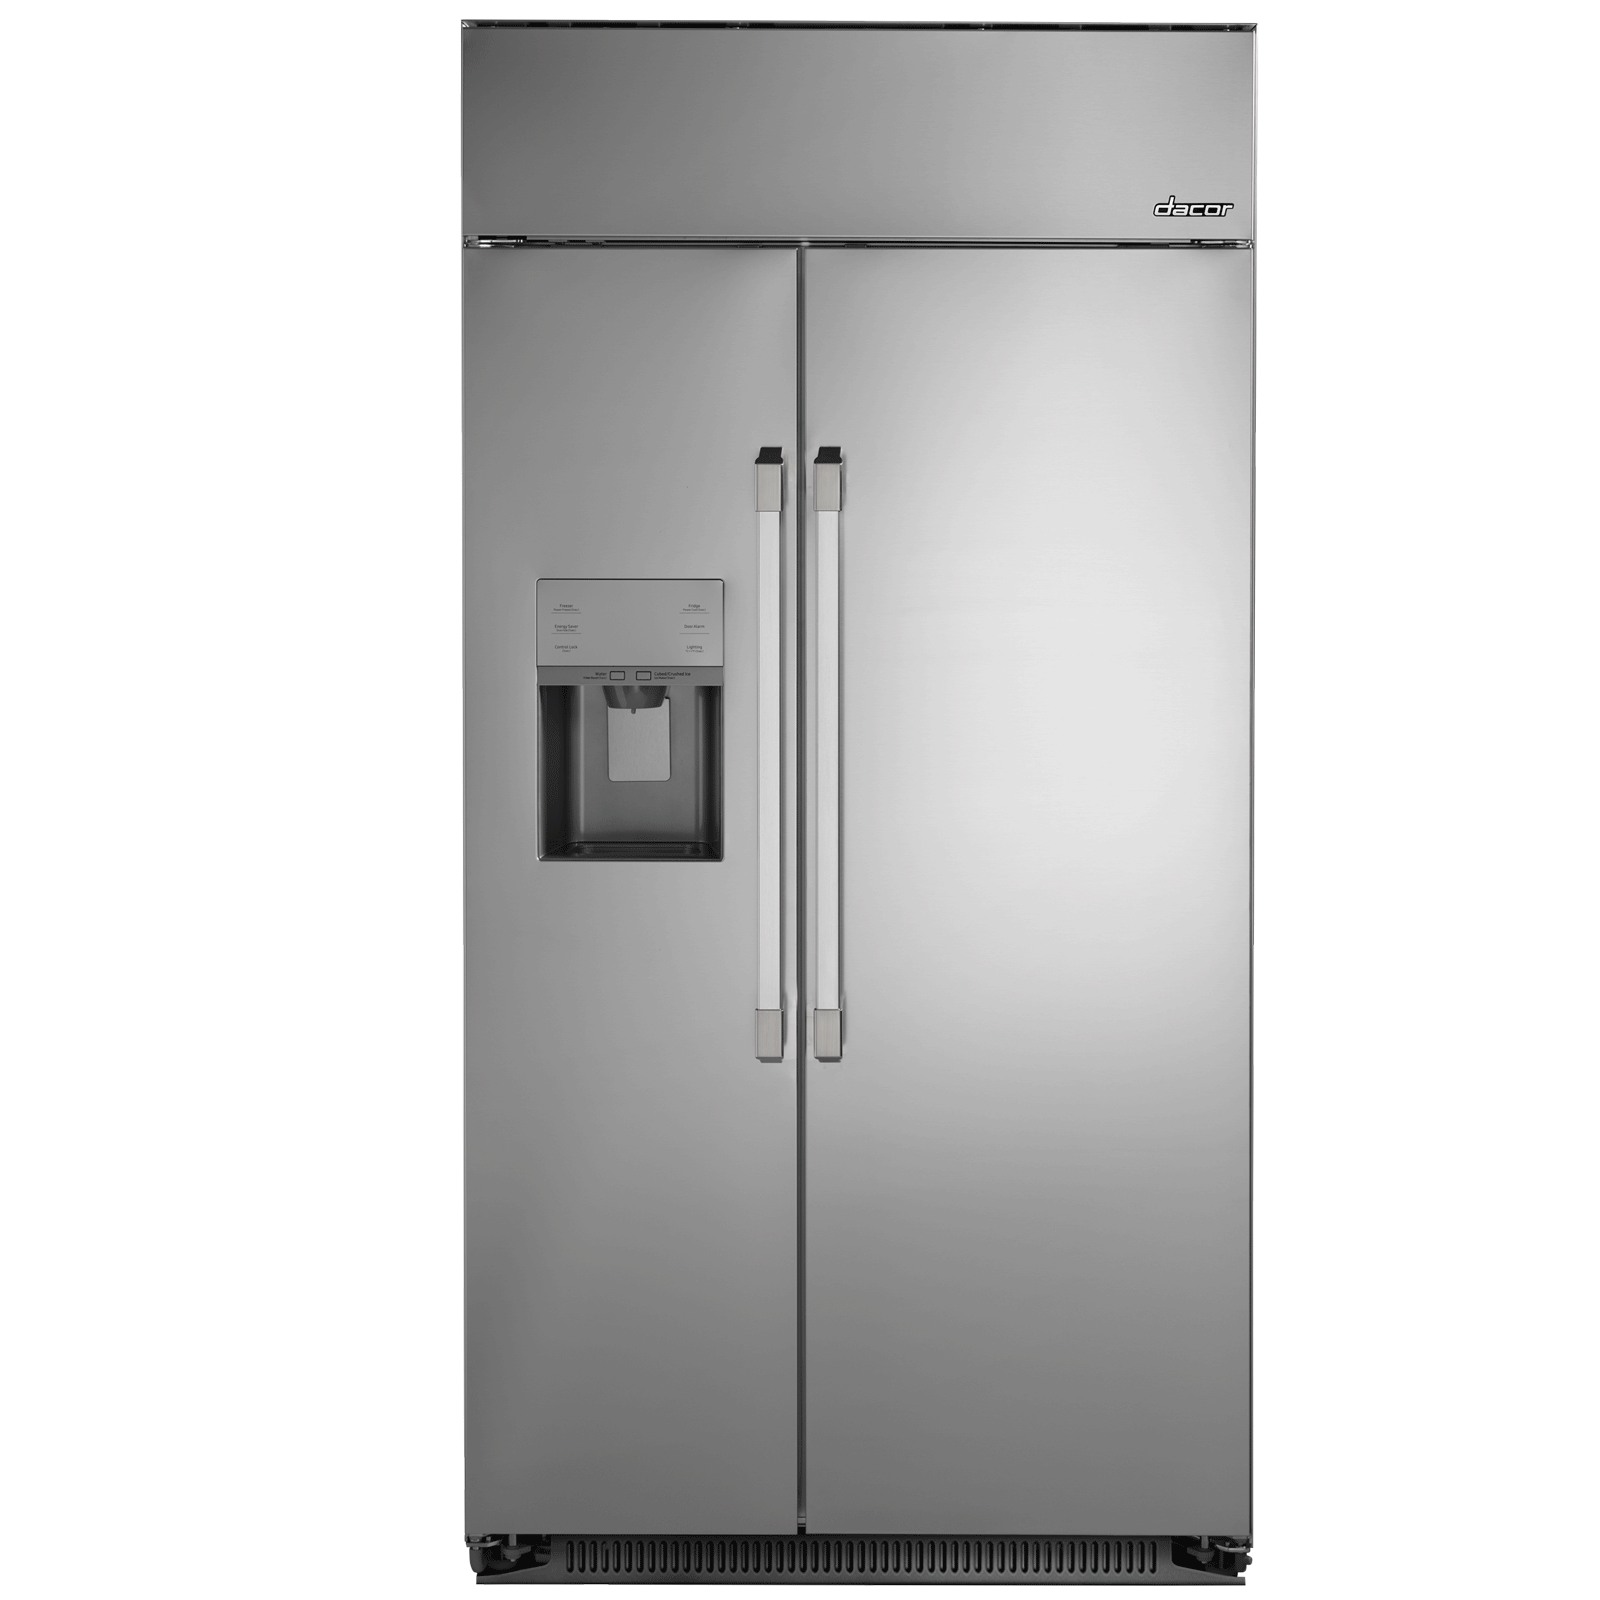 "Dacor Professional 42"" Built-In Side-by-Side Refrigerator"